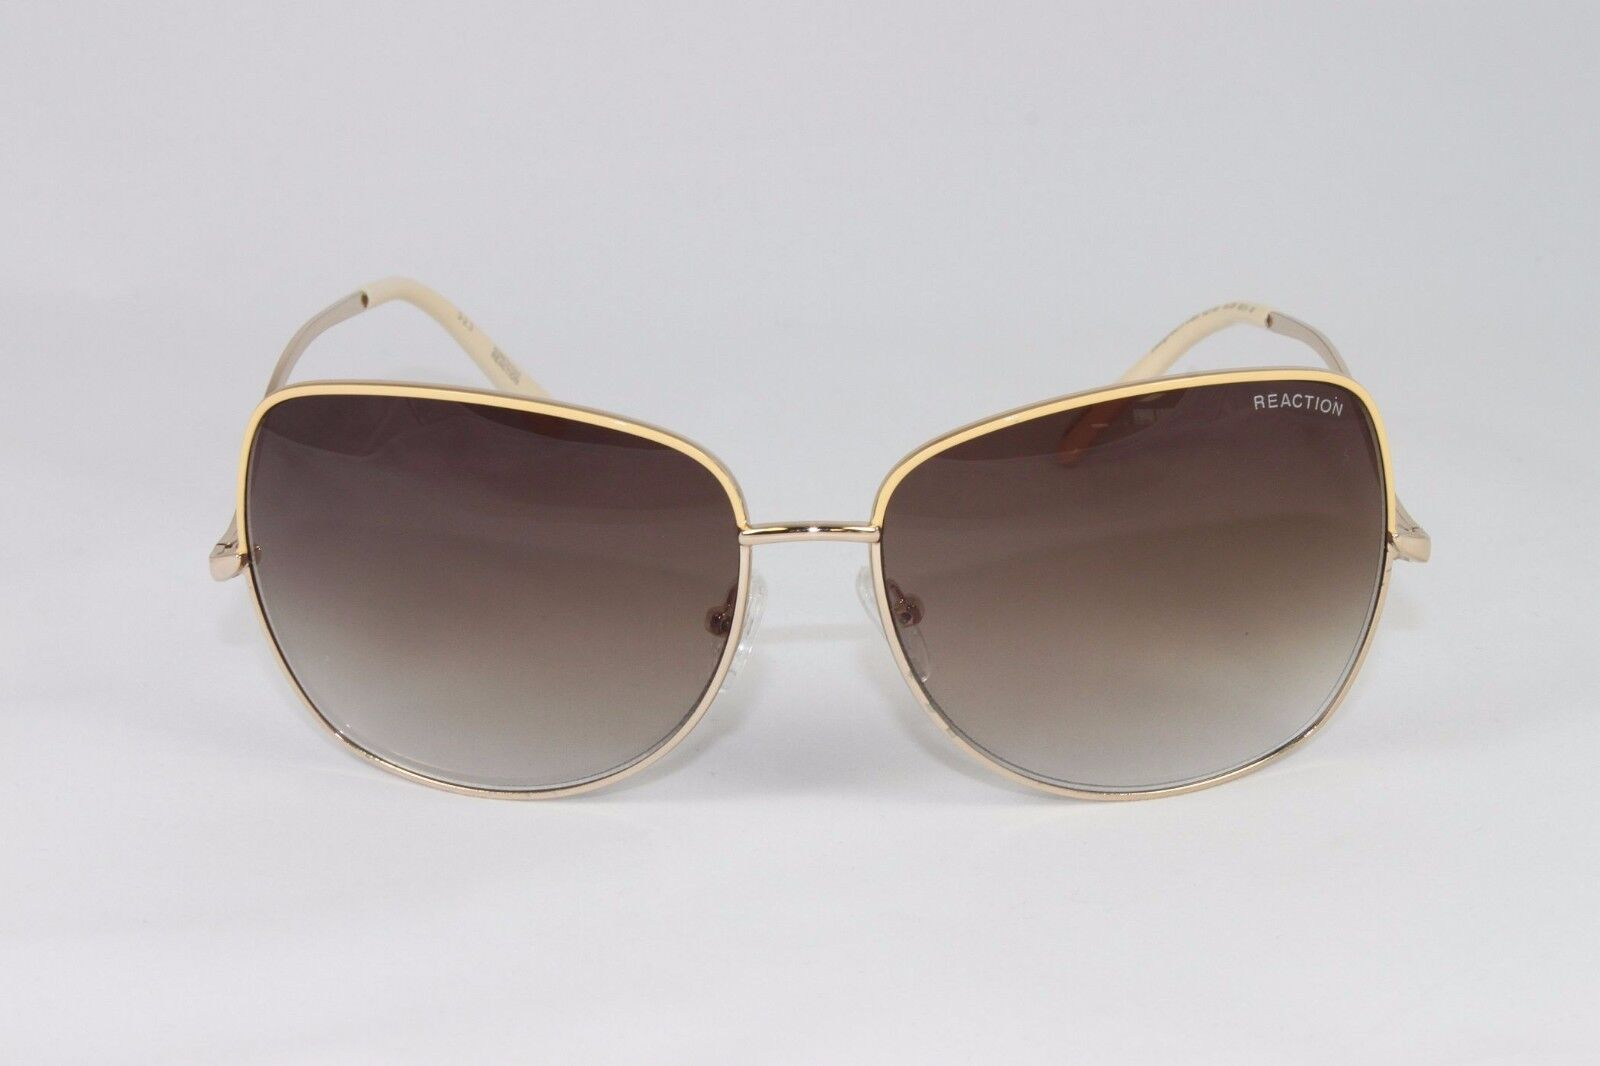 fc4fd32b8f Kenneth Cole Reaction Sunglasses 1191 32F Gold Beige Authentic New  Christmas Supplies